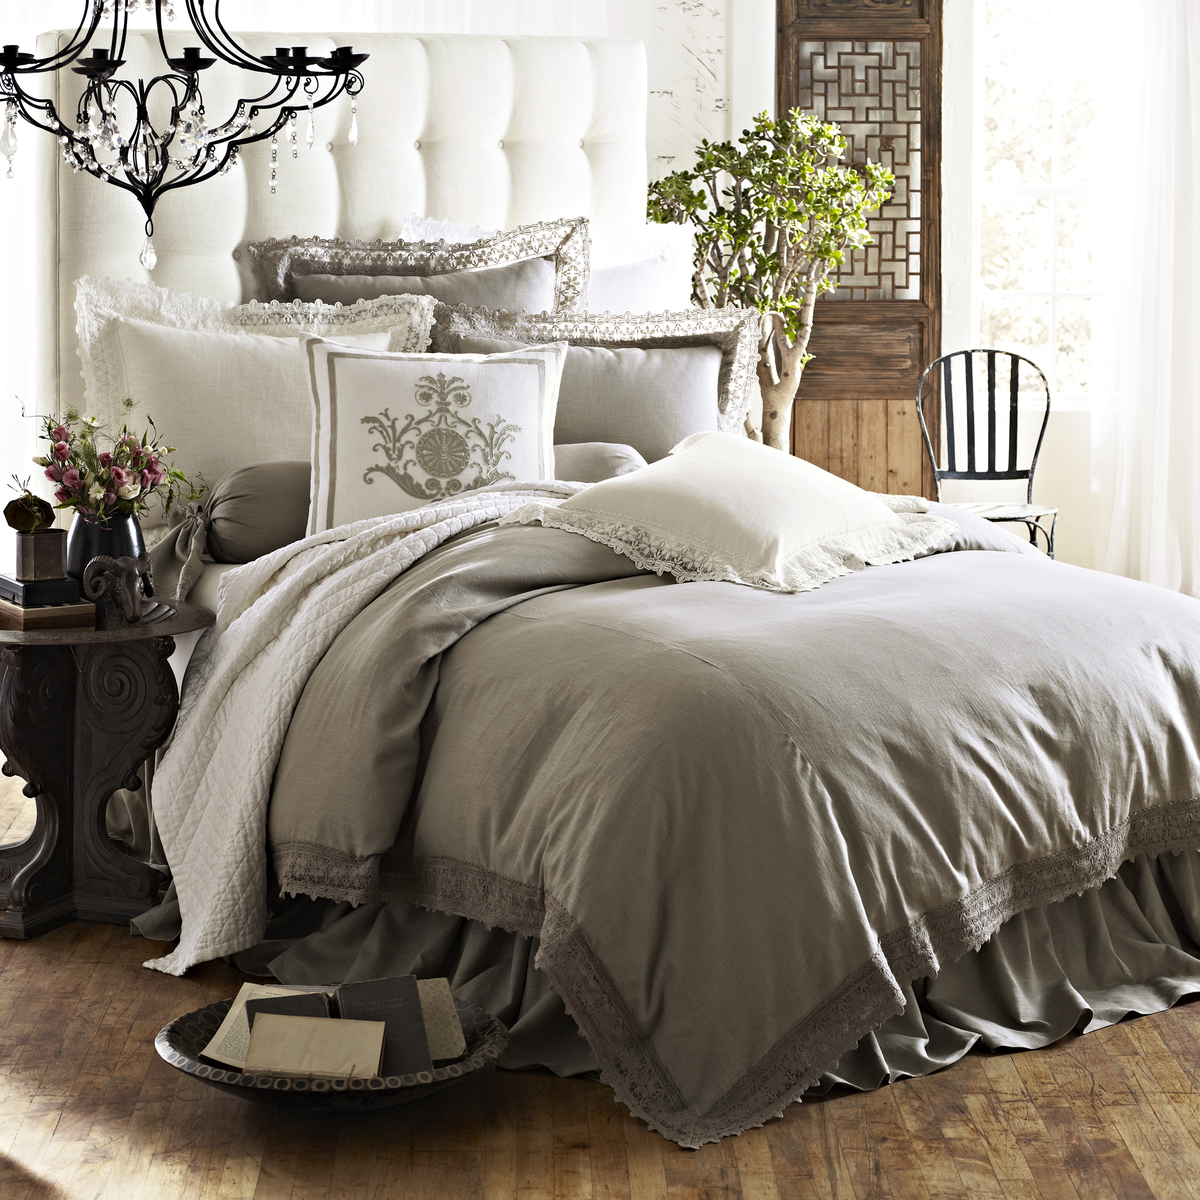 148 Best Linen Images On Pinterest: Luxury Essentials: Top Bedding Manufacturers